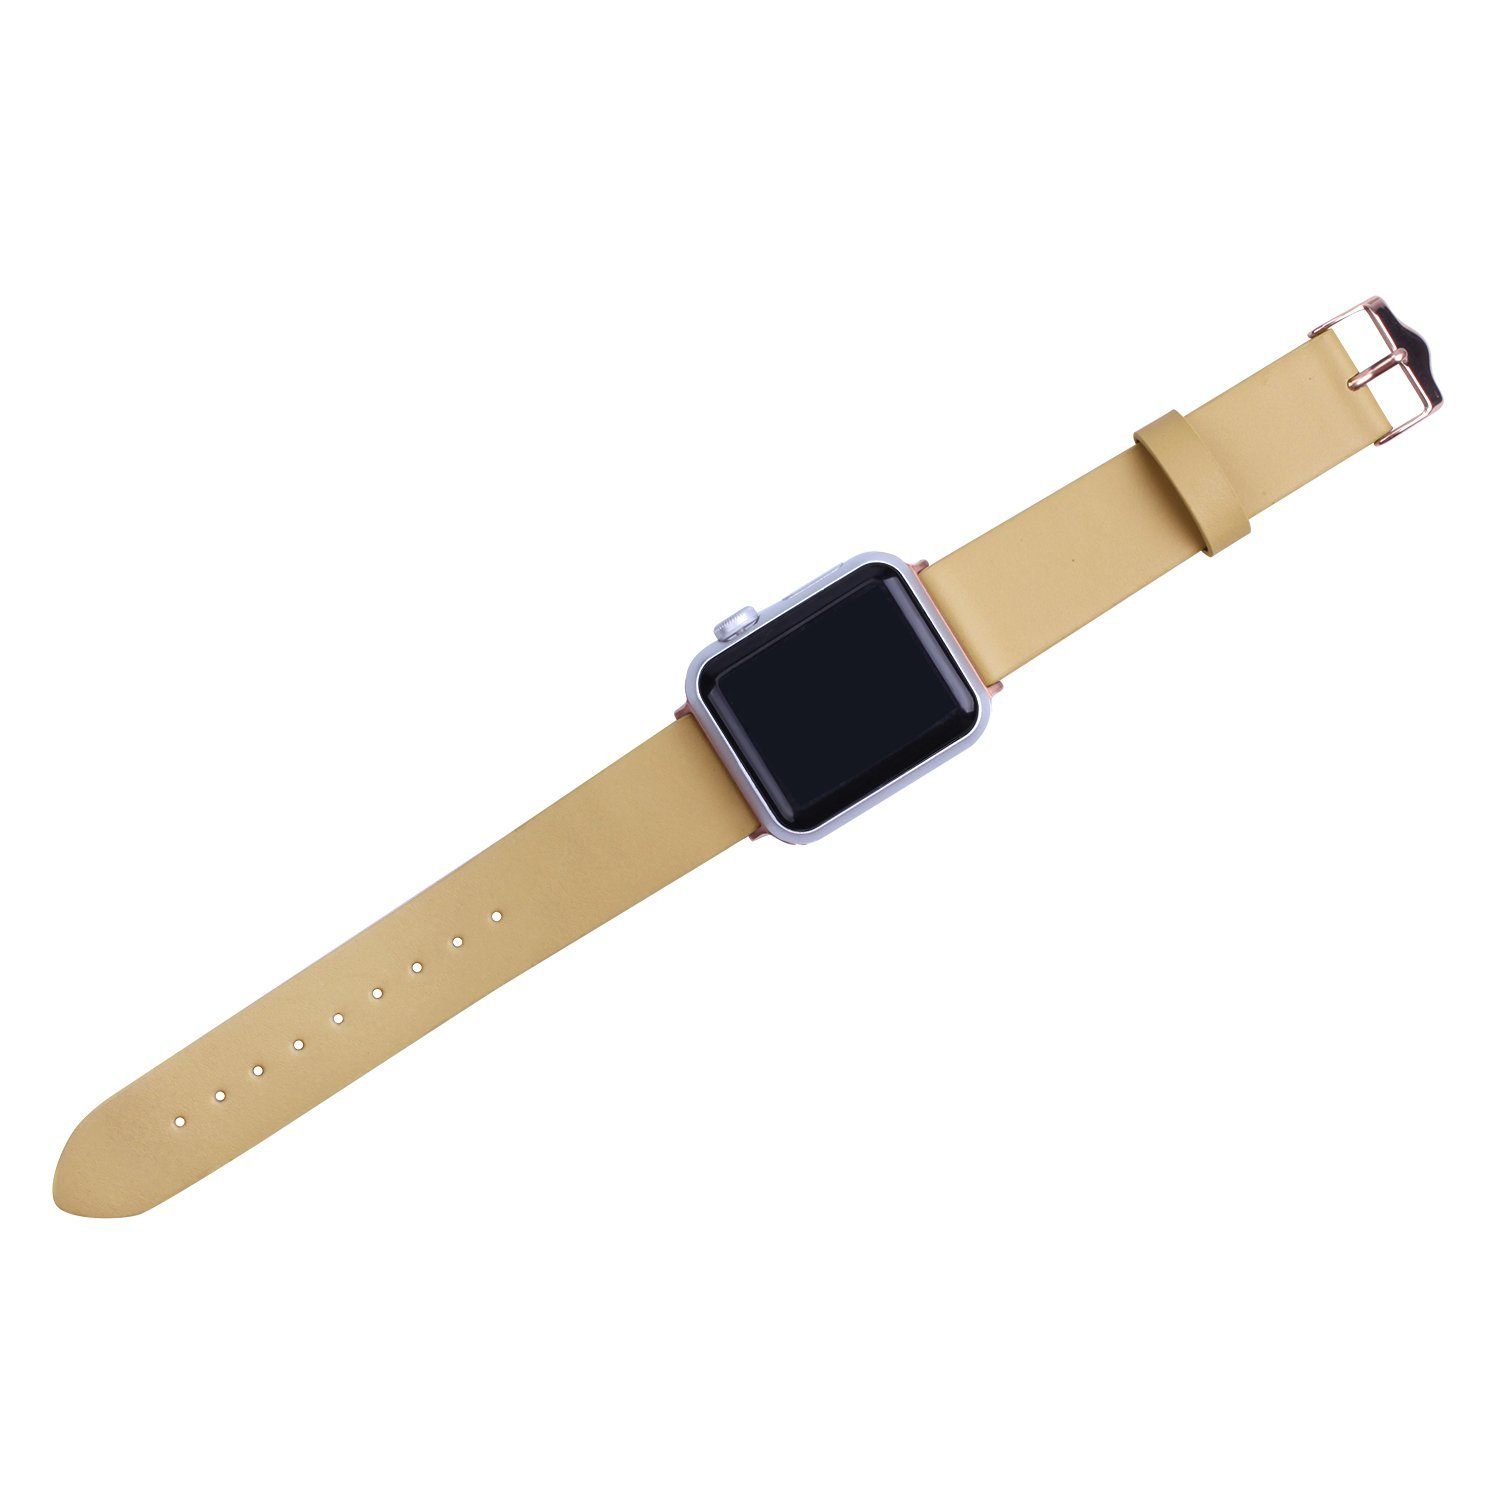 SWAWS 38mm Genuine Leather Watch Band Replacement Watch Straps with Classical Metal Buckle Design for iWatch